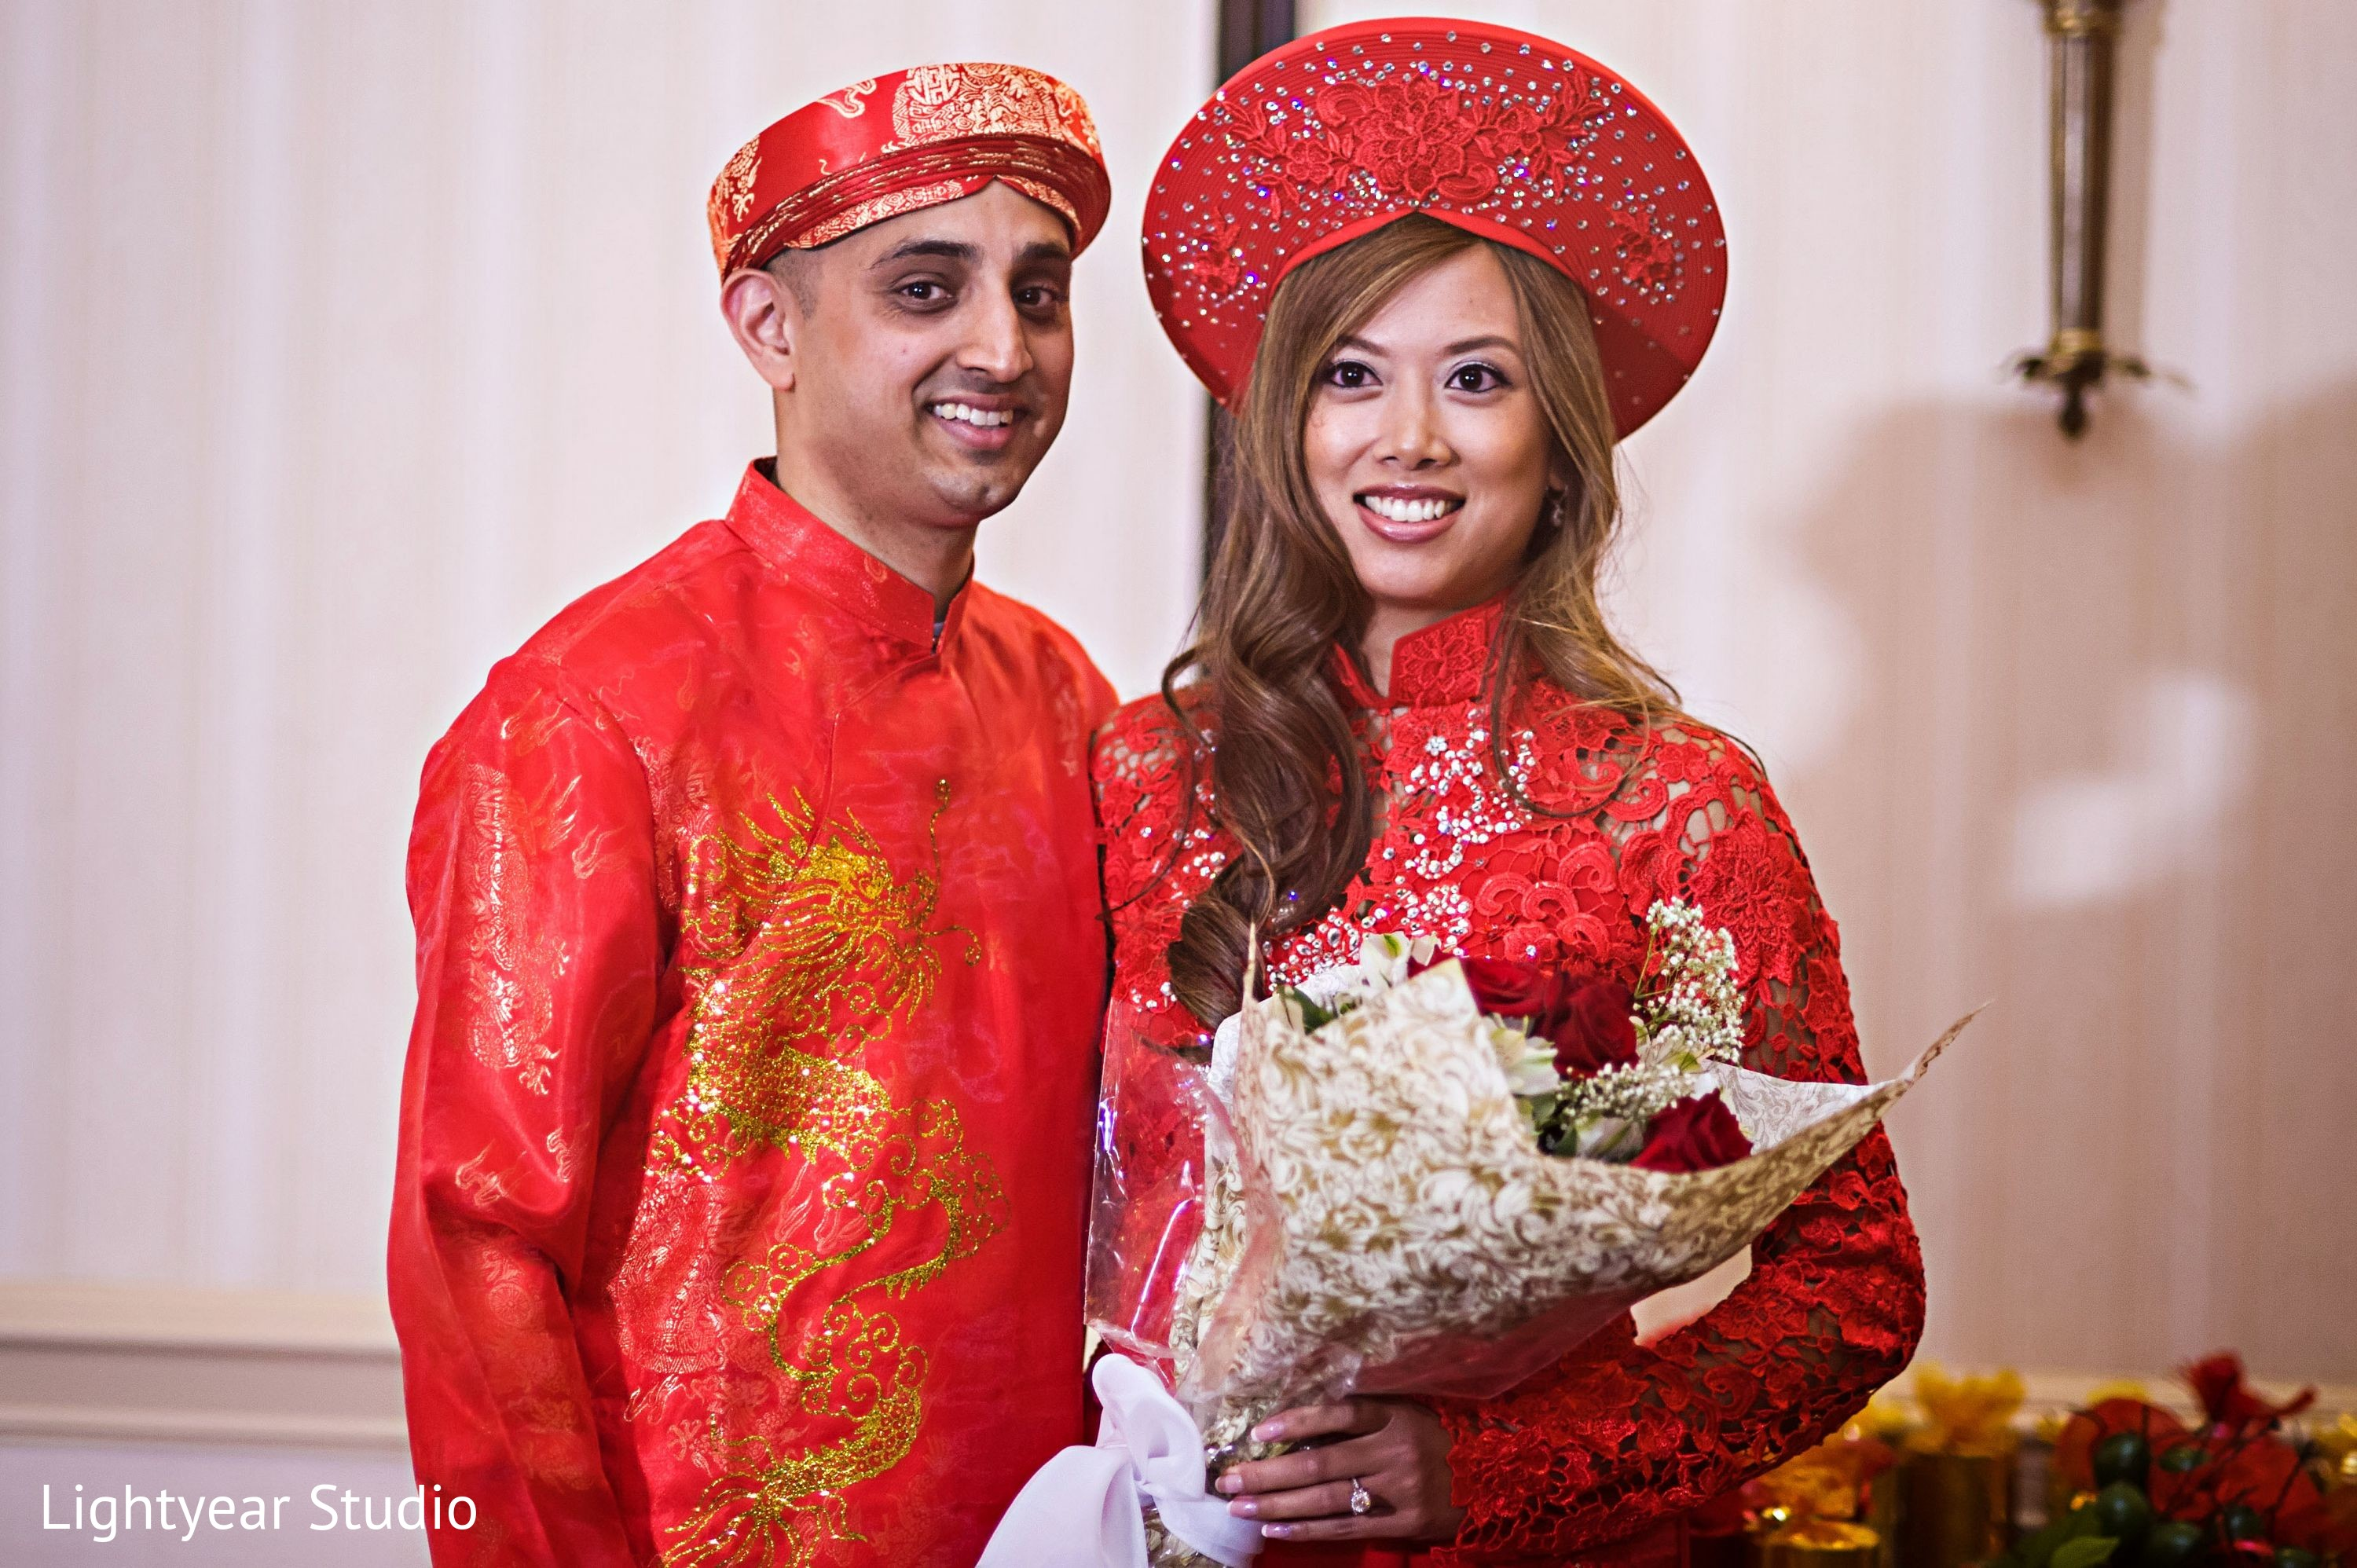 Vietnamese Wedding. . Tea Ceremony Family Photo. Day Fusion Wedding ...